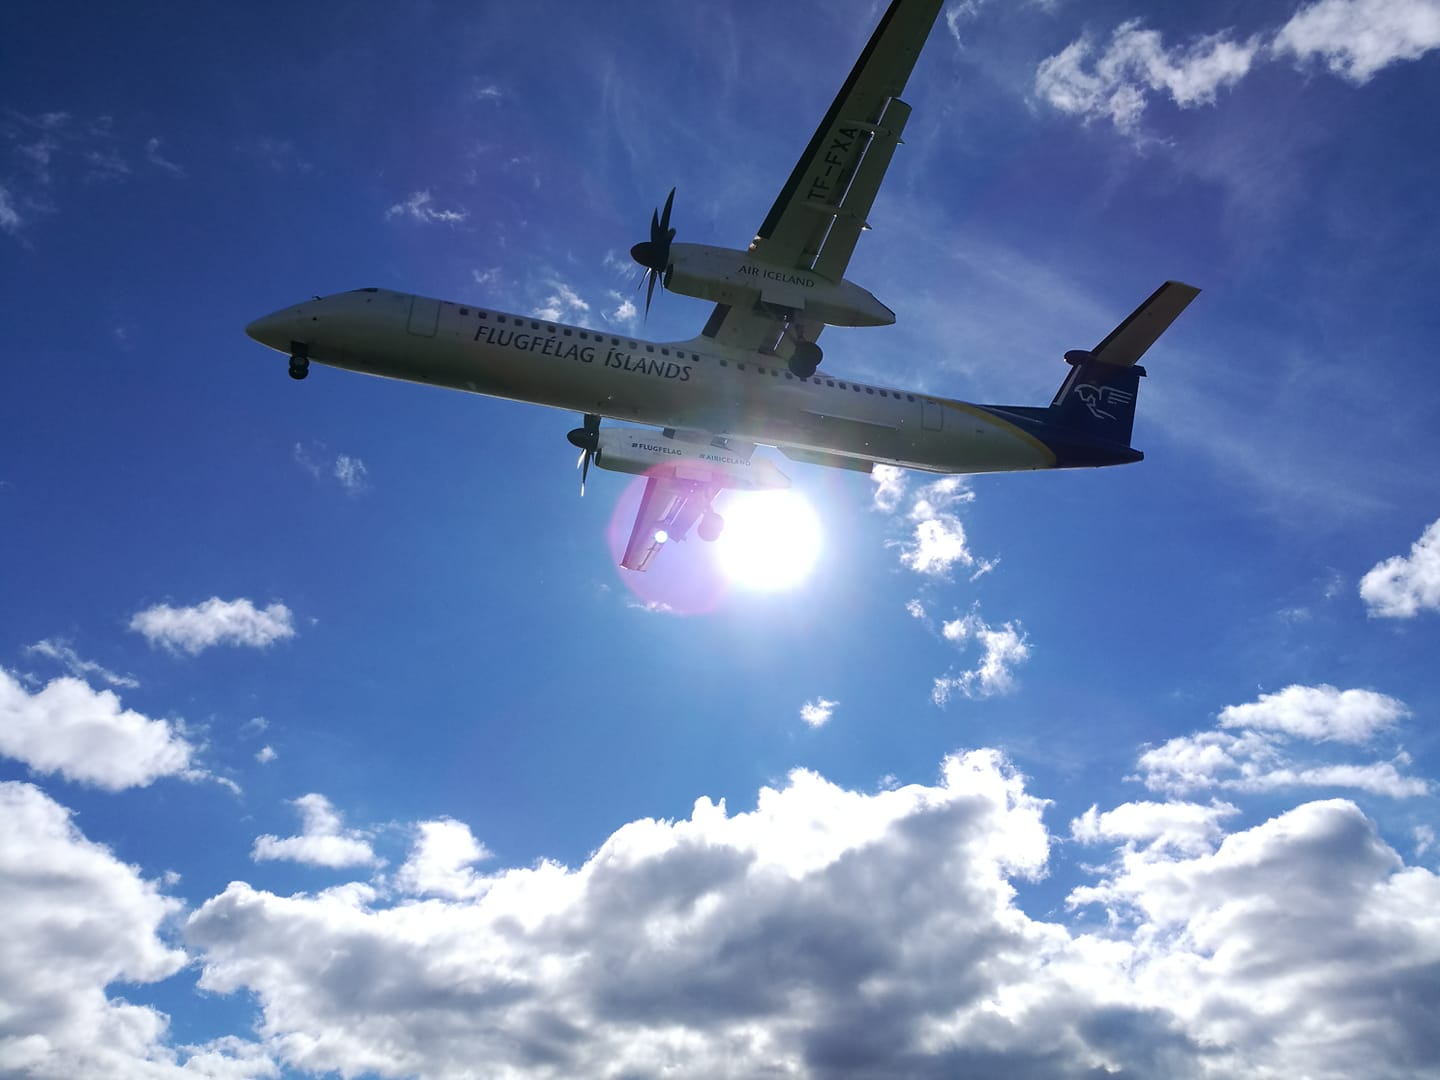 Bombardier Dash 8 Q400 TF-FXA approach during Air Iceland Connect flight FXI2234 from Kulusuk, Greenland, to Reykjavik // Source: Flugblogg